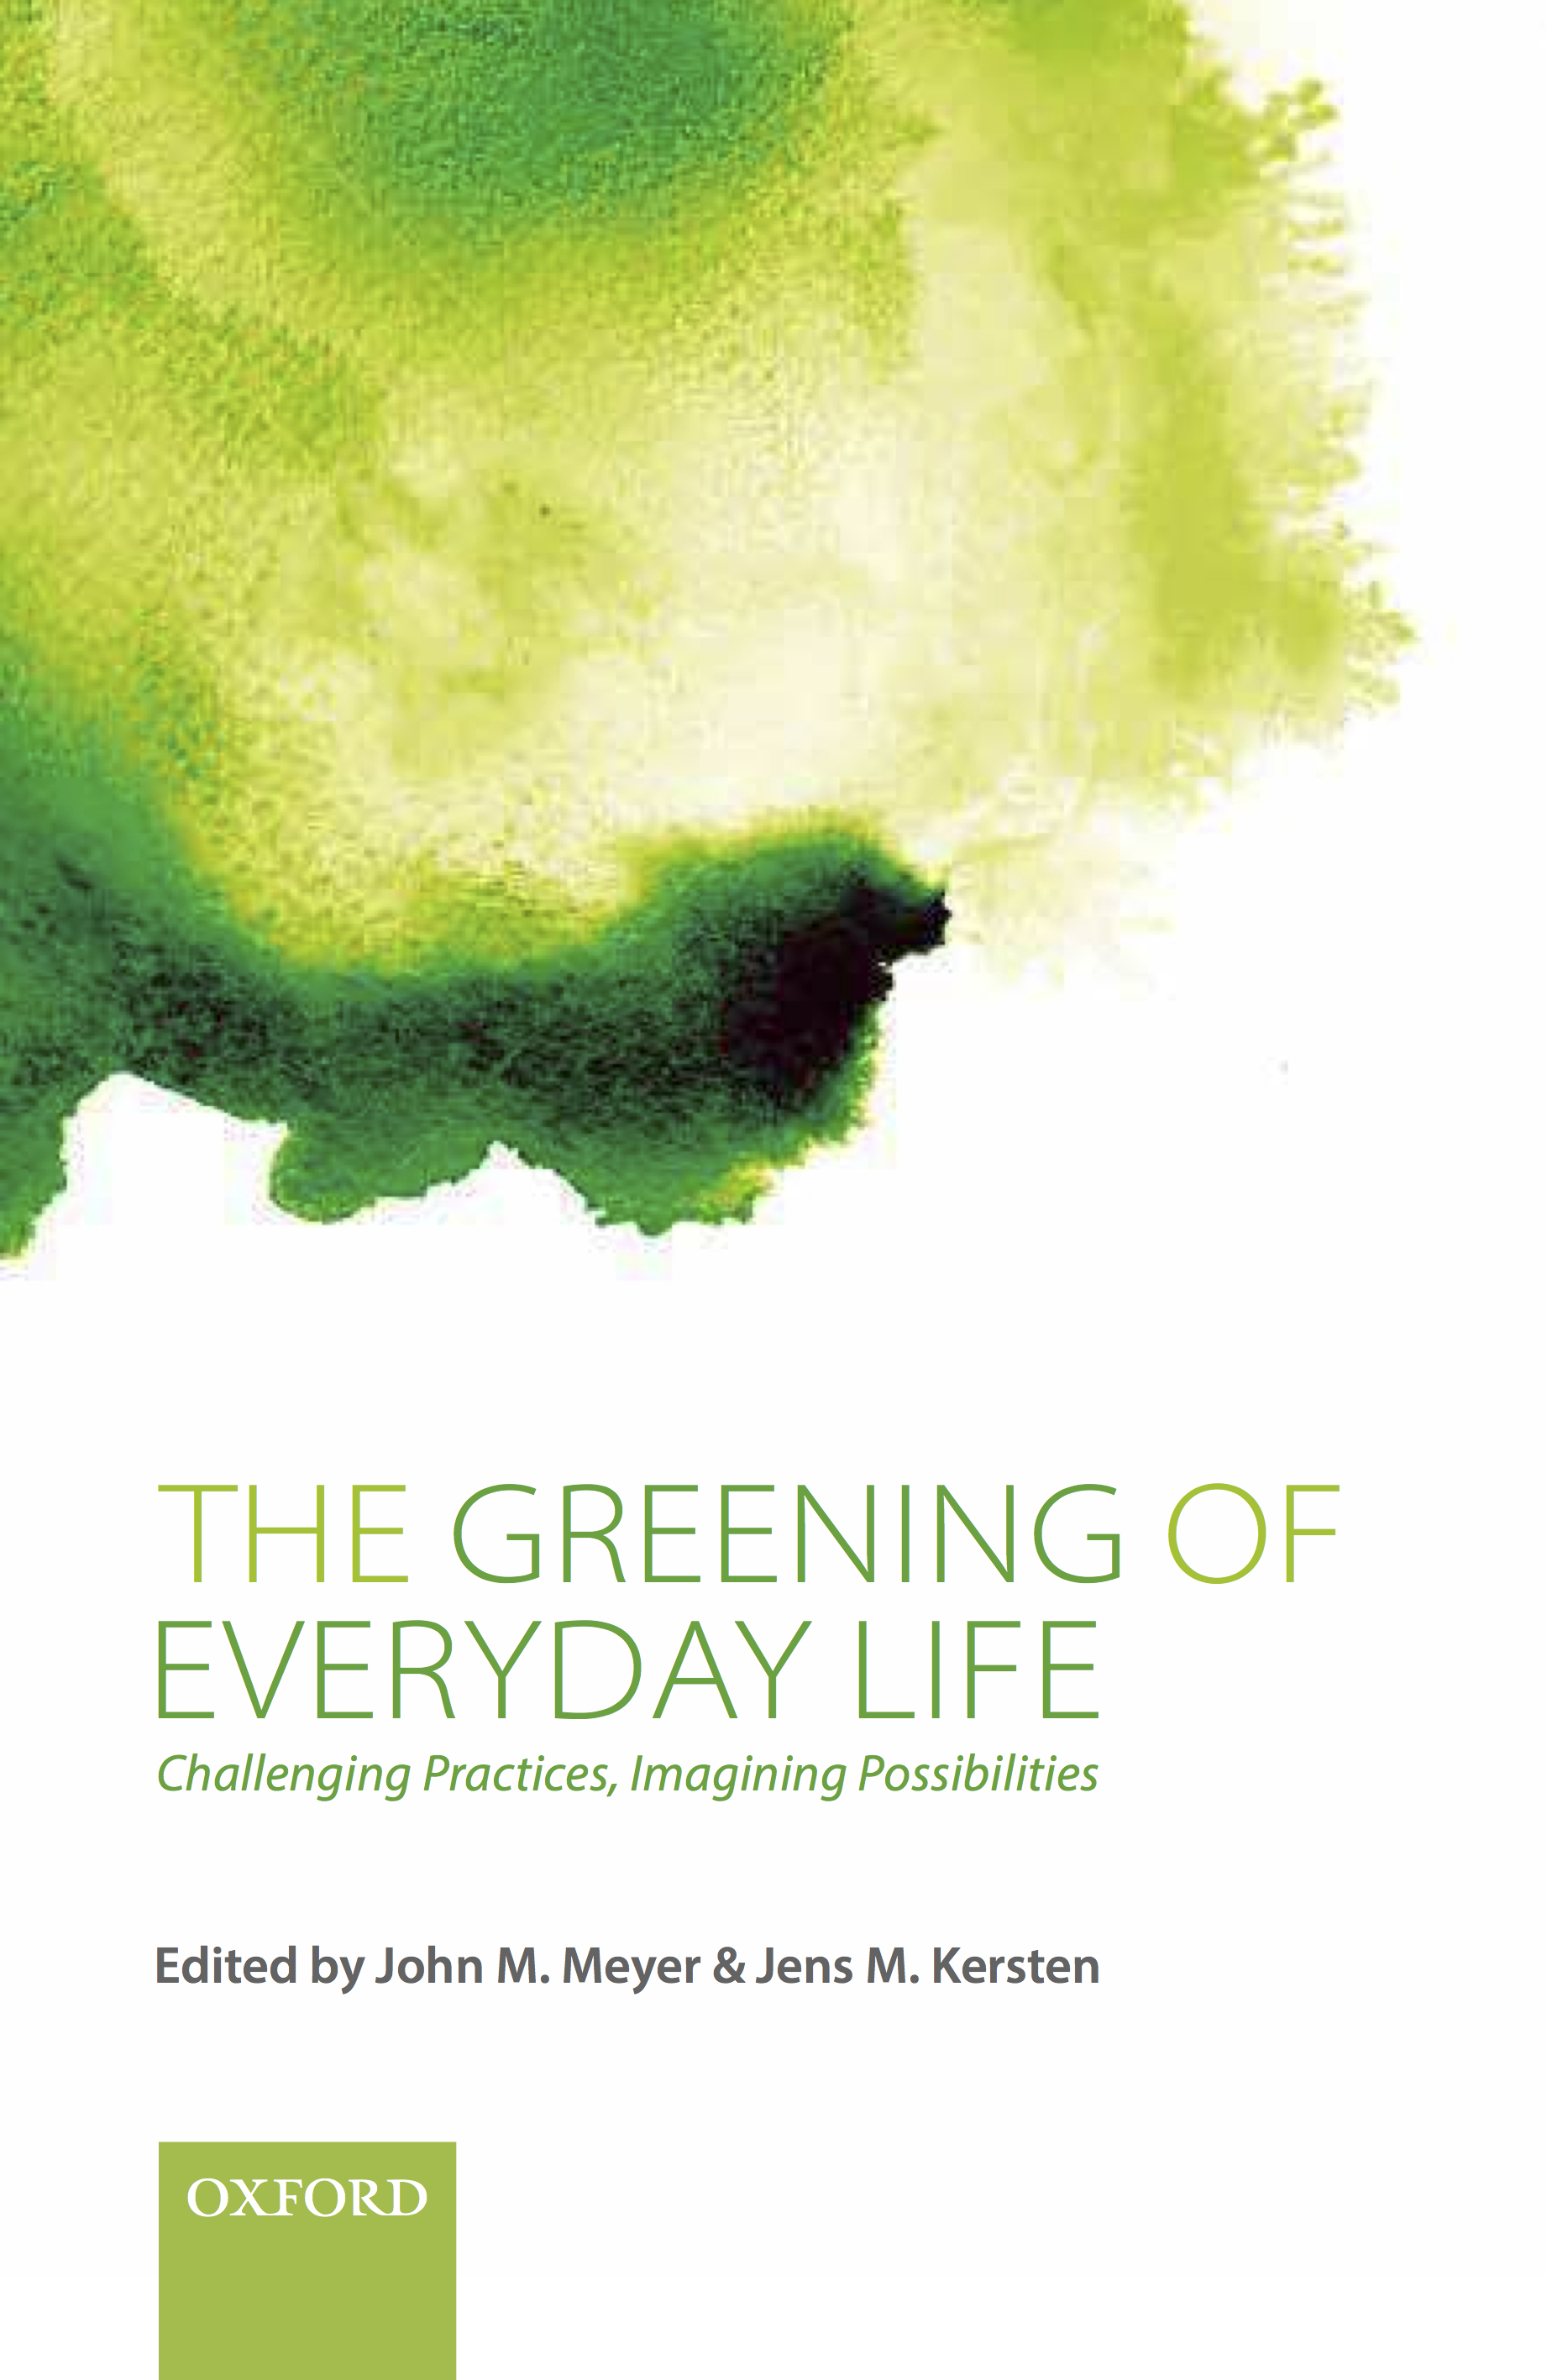 Greening of Everyday Life.jpg